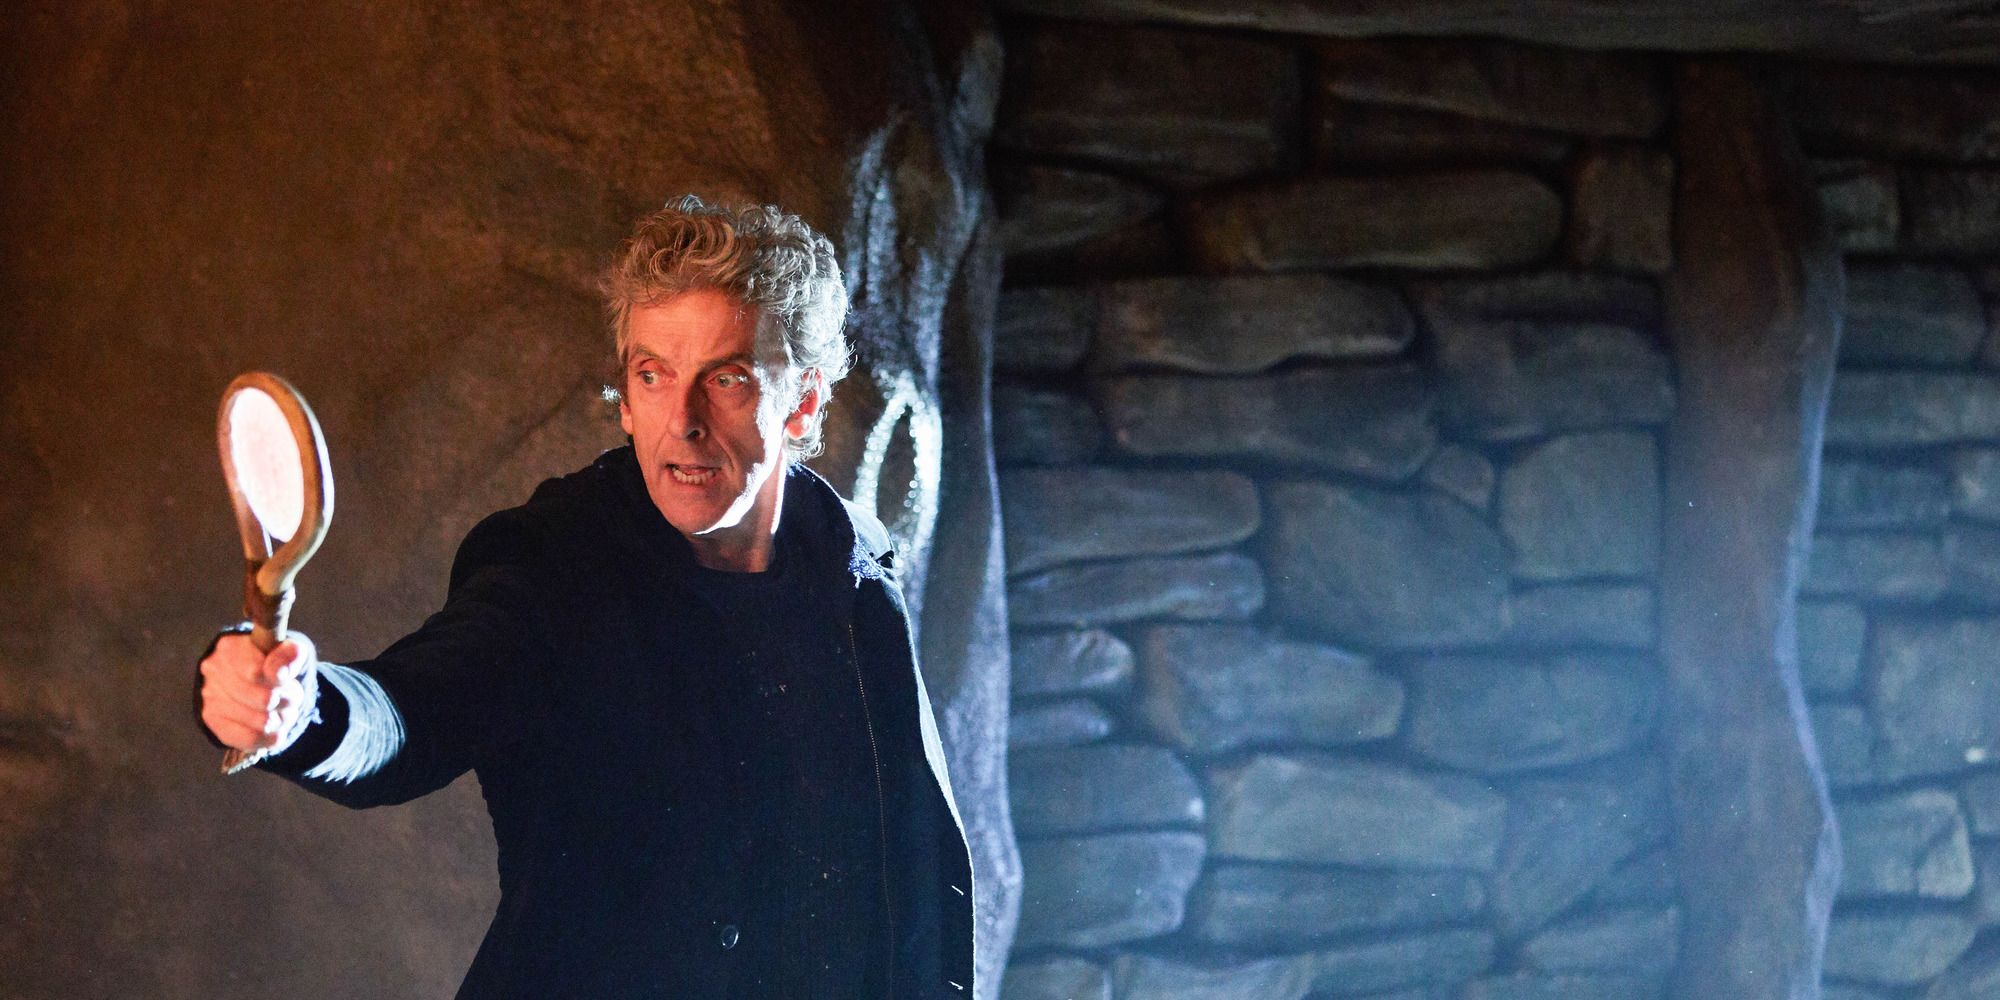 'Doctor Who' s10e10, 'The Eaters of Light'